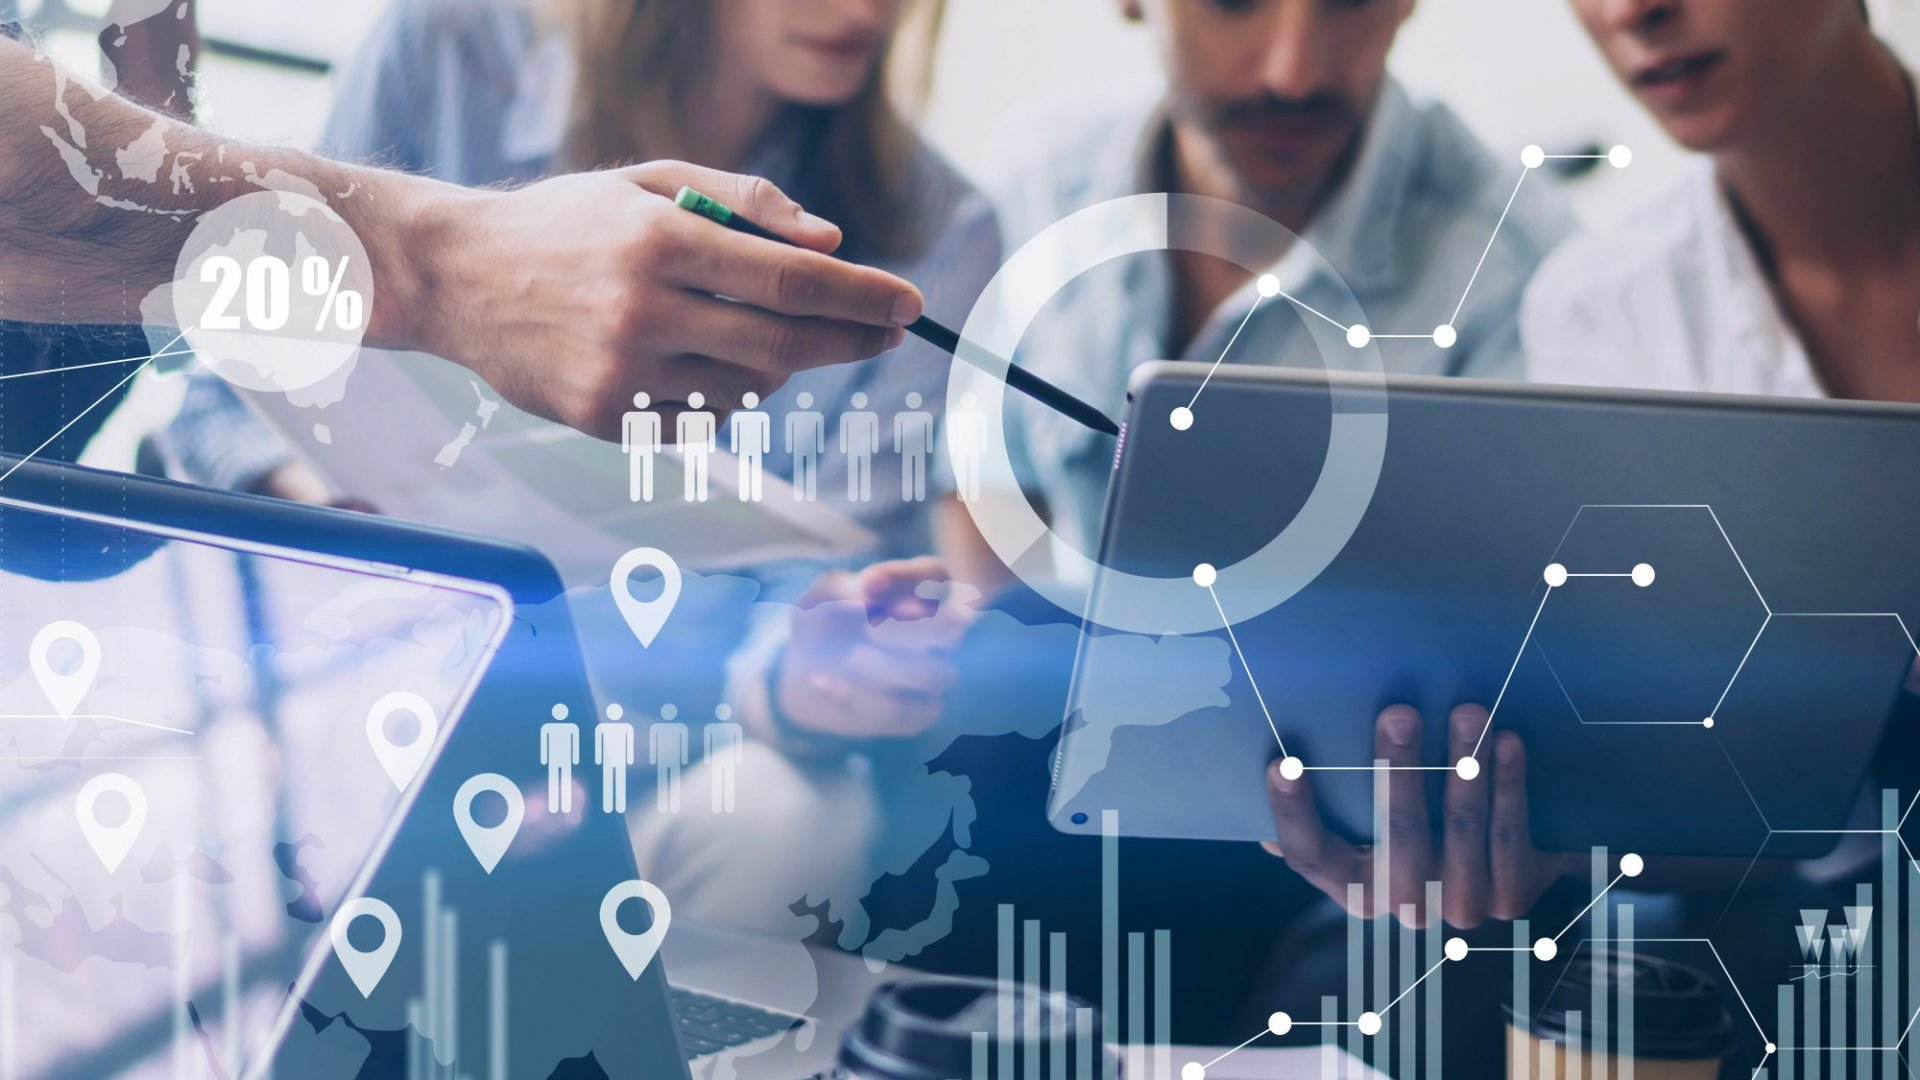 How Your Team Can Take a Data-Driven Approach to Hiring in Today's Tight Labor Market